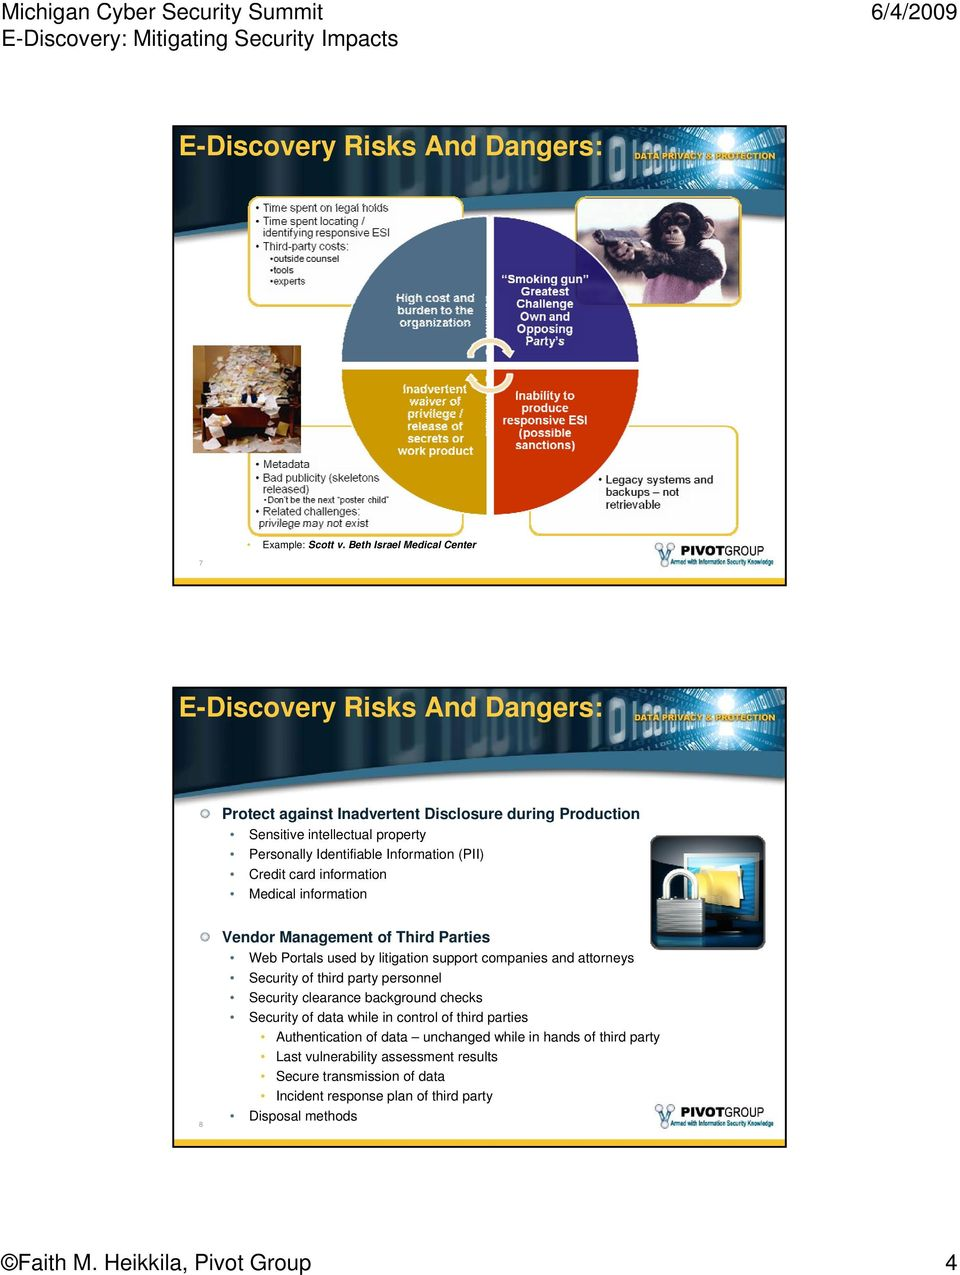 Information (PII) Credit card information Medical information 8 Vendor Management of Third Parties Web Portals used by litigation support companies and attorneys Security of third